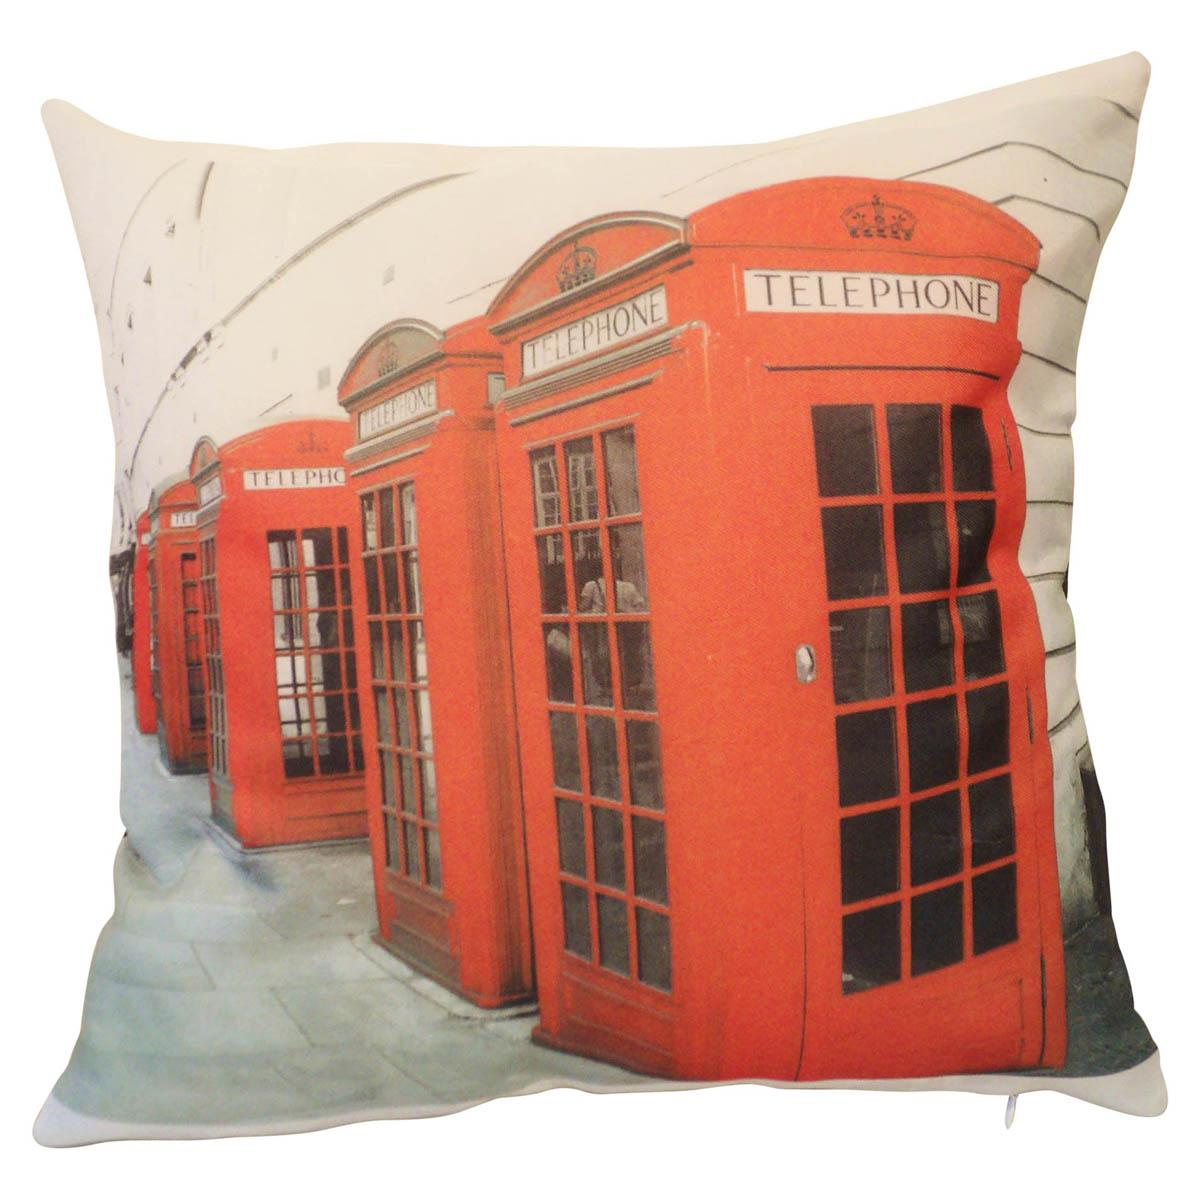 Alan Symonds Cushions And Throws Telephone Boxes Filled Cushion Multi Picture